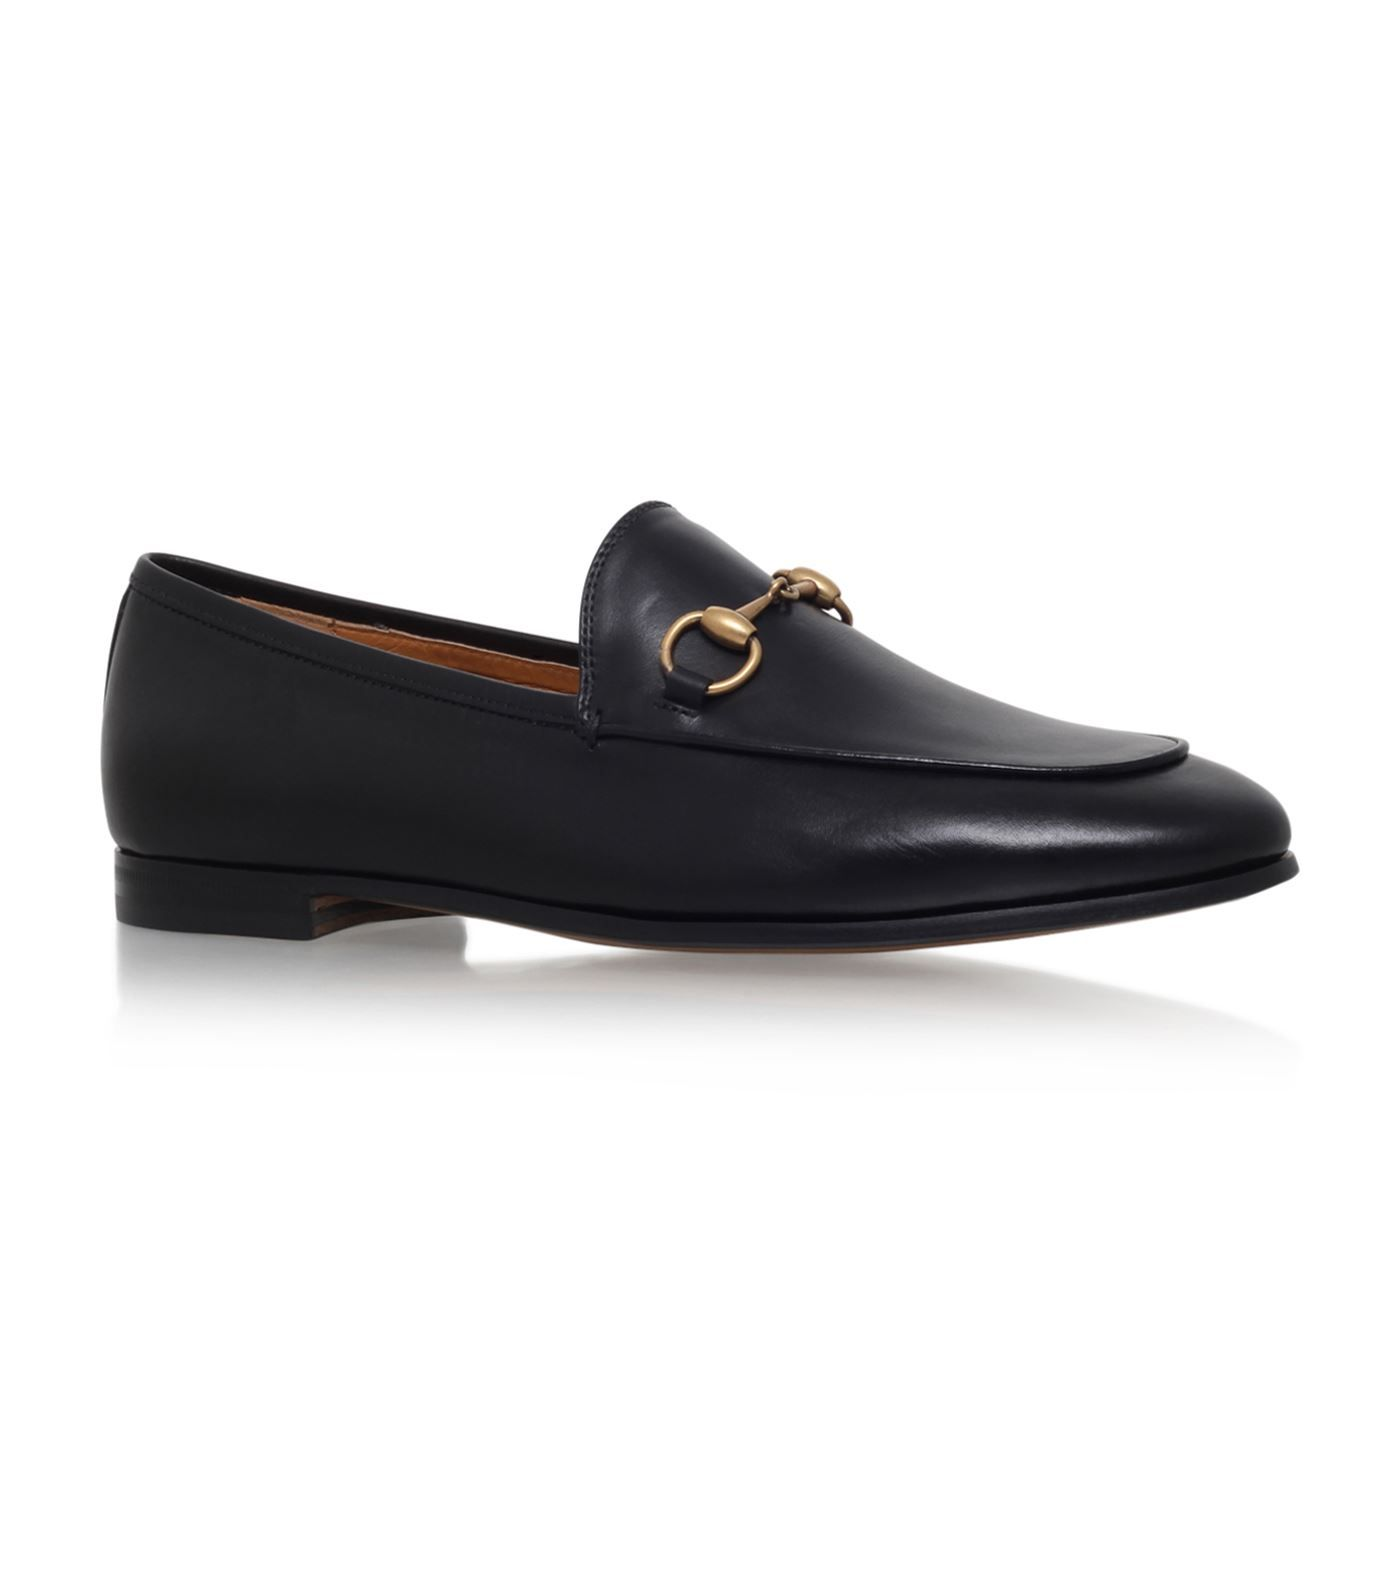 GUCCI LEATHER JORDAAN LOAFERS